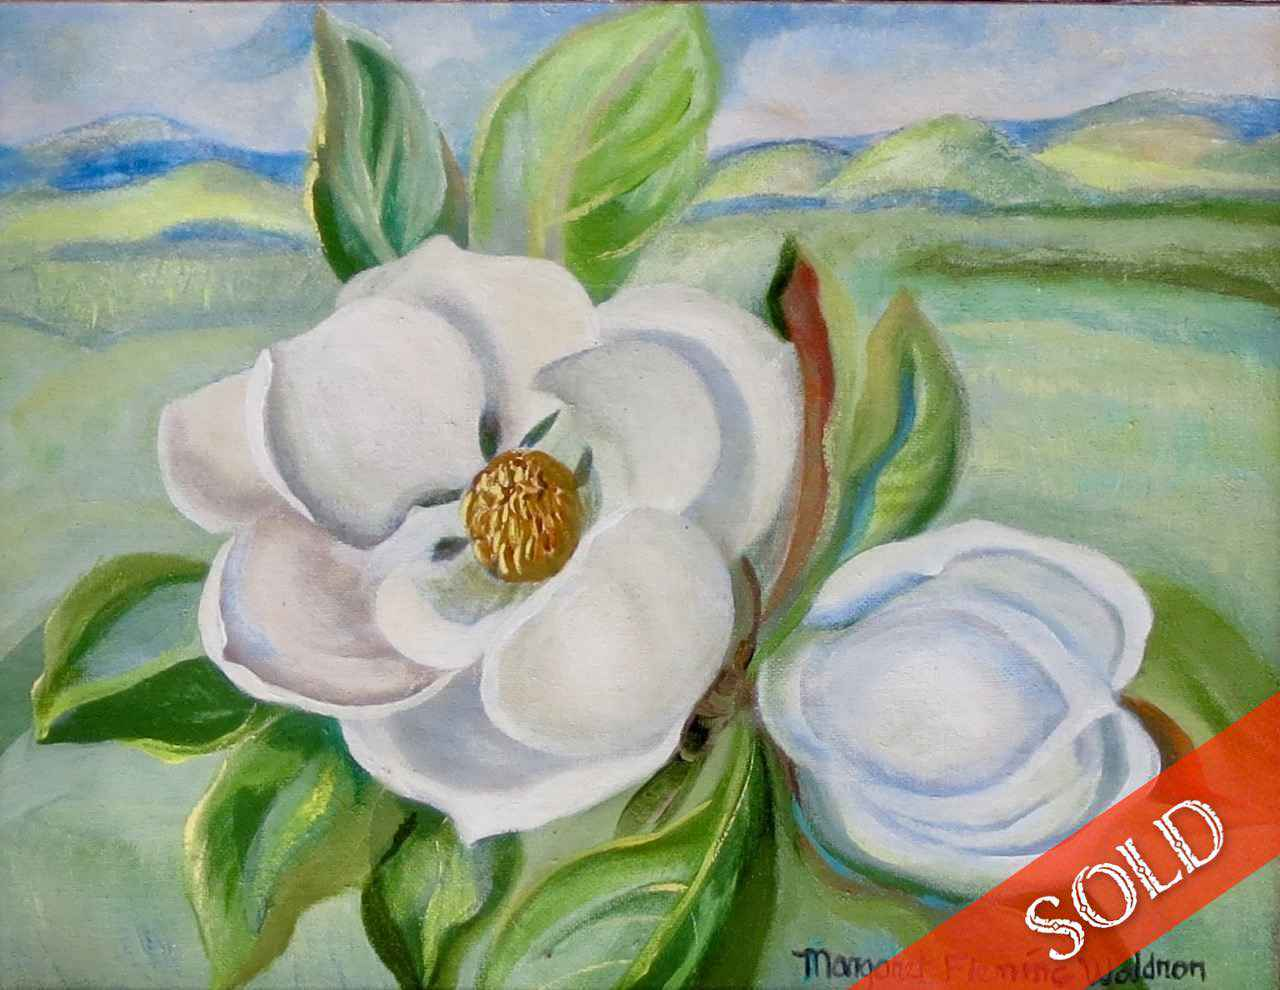 Magnolia, Nuuanu Vall... by  Margaret Fleming Waldron (1910-1992) - Masterpiece Online